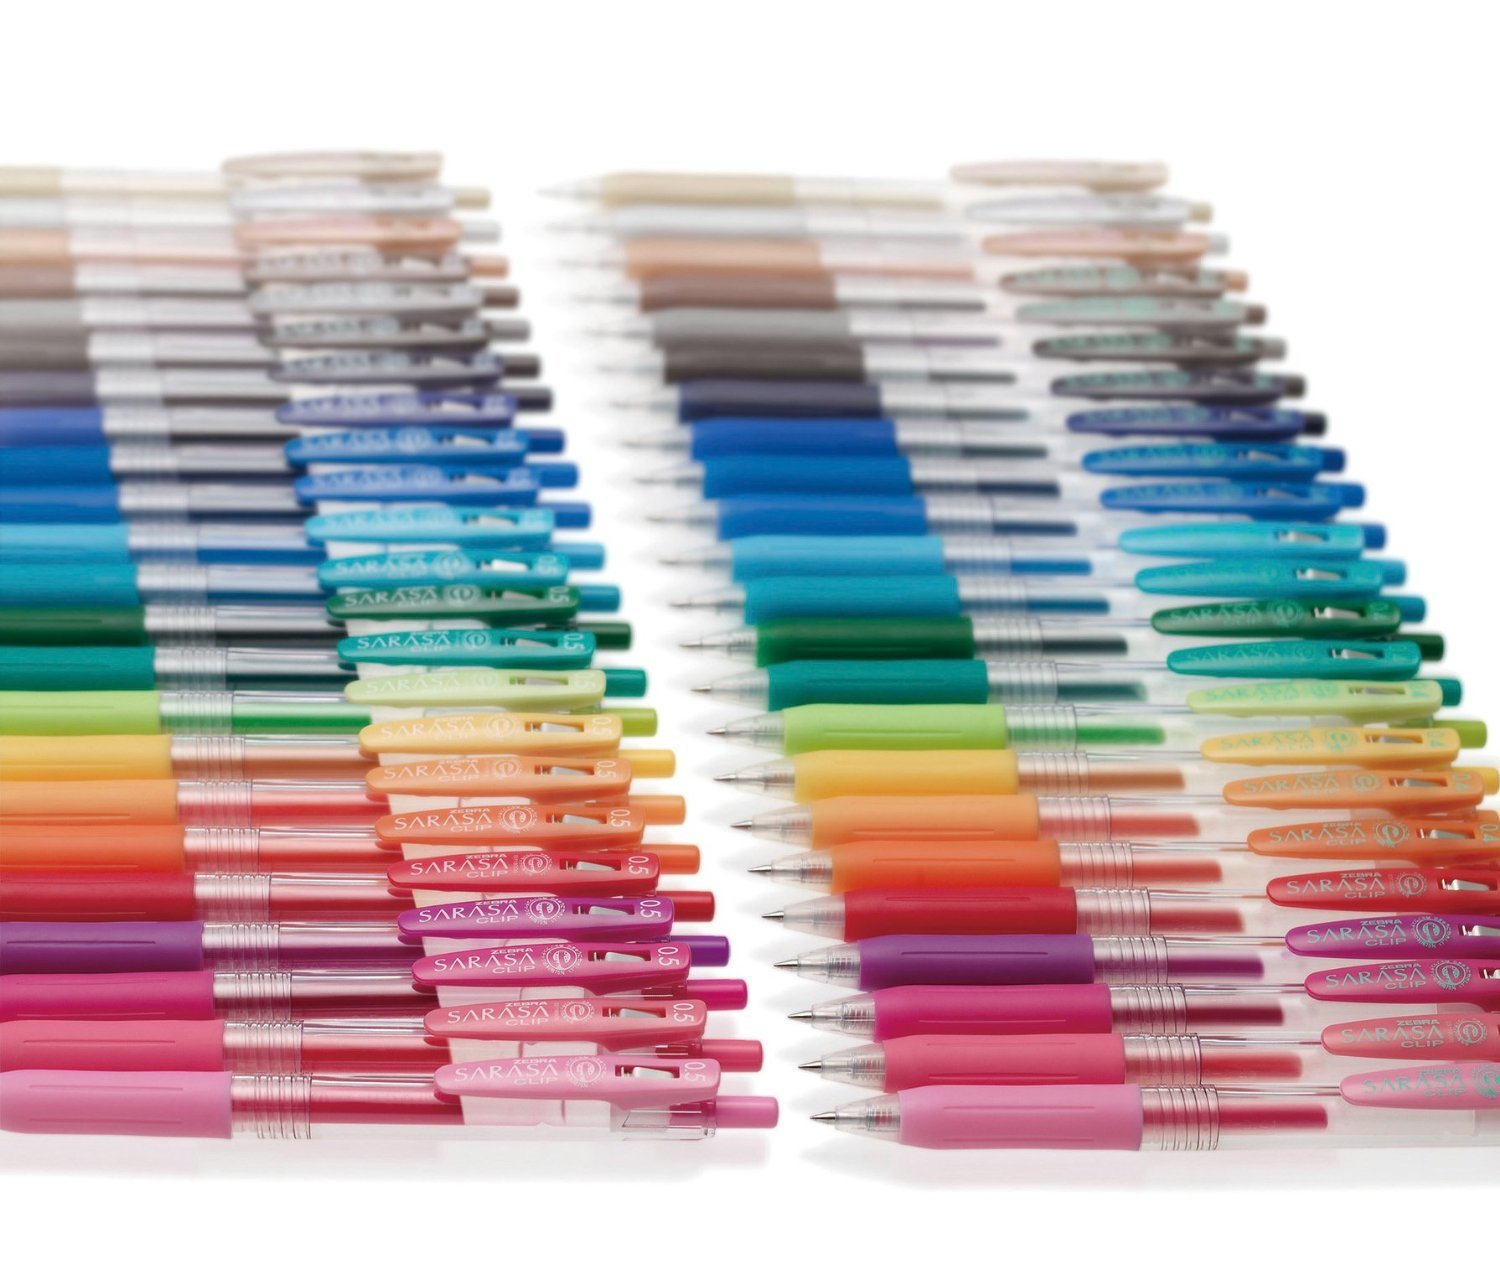 Zebra Gel Ballpoint Pen Sarasa Clip 0.5 Jj15-20ca 20 Color Set by Zebra (Image #2)